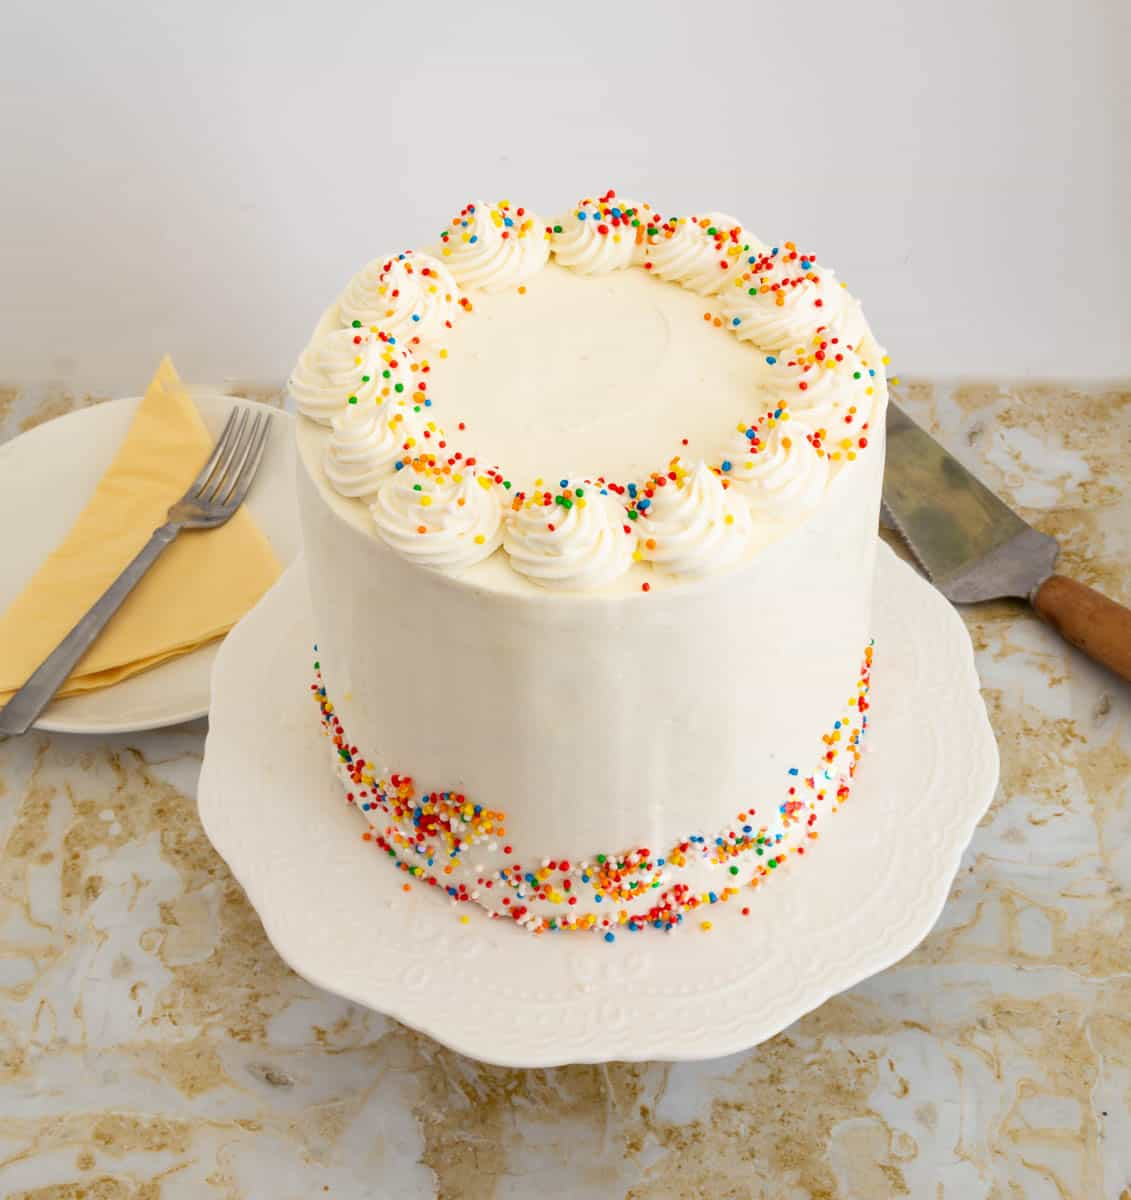 Frosted vanilla birthday cake on a cake stand